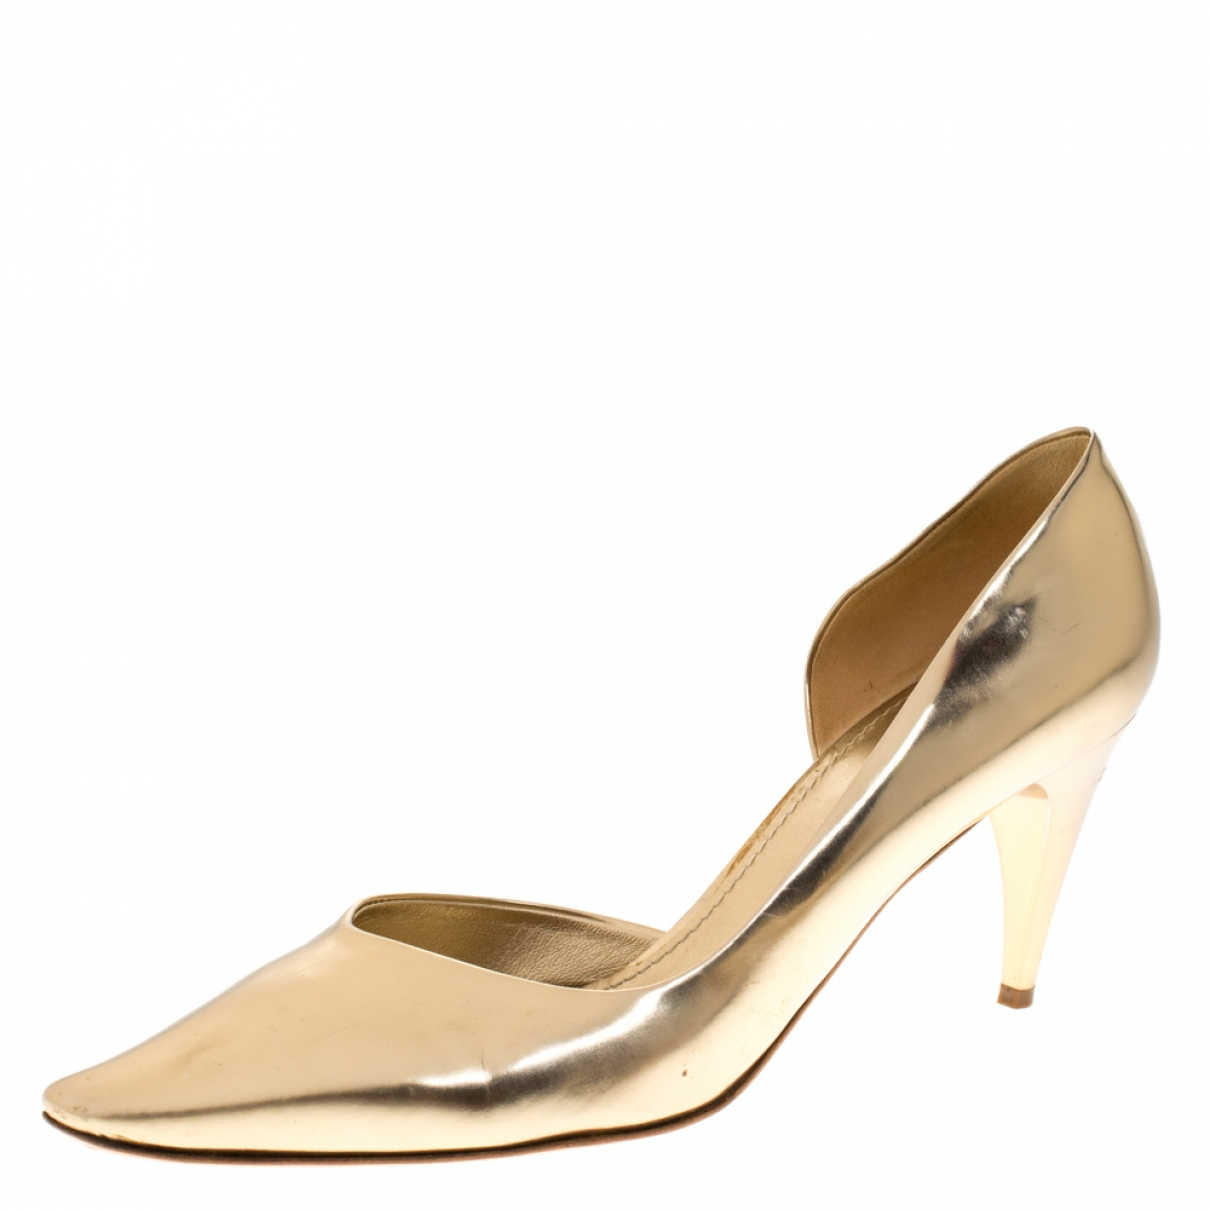 Louis Vuitton \N Gold Leather Heels for Women 8.5 US